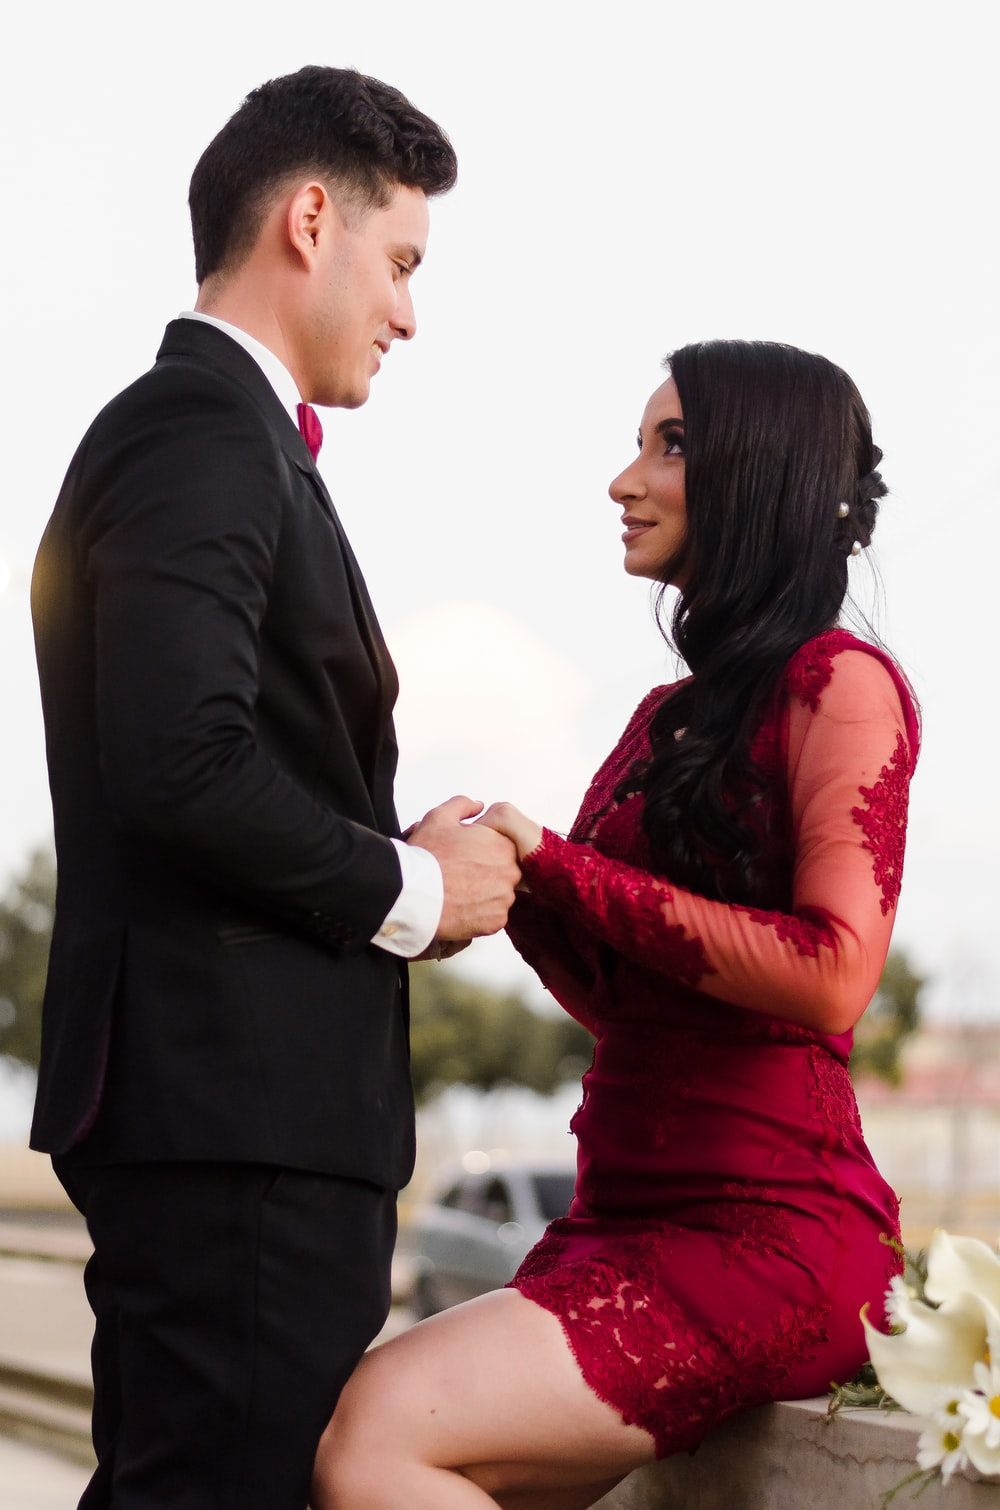 man in black suit jacket kissing woman in red dress